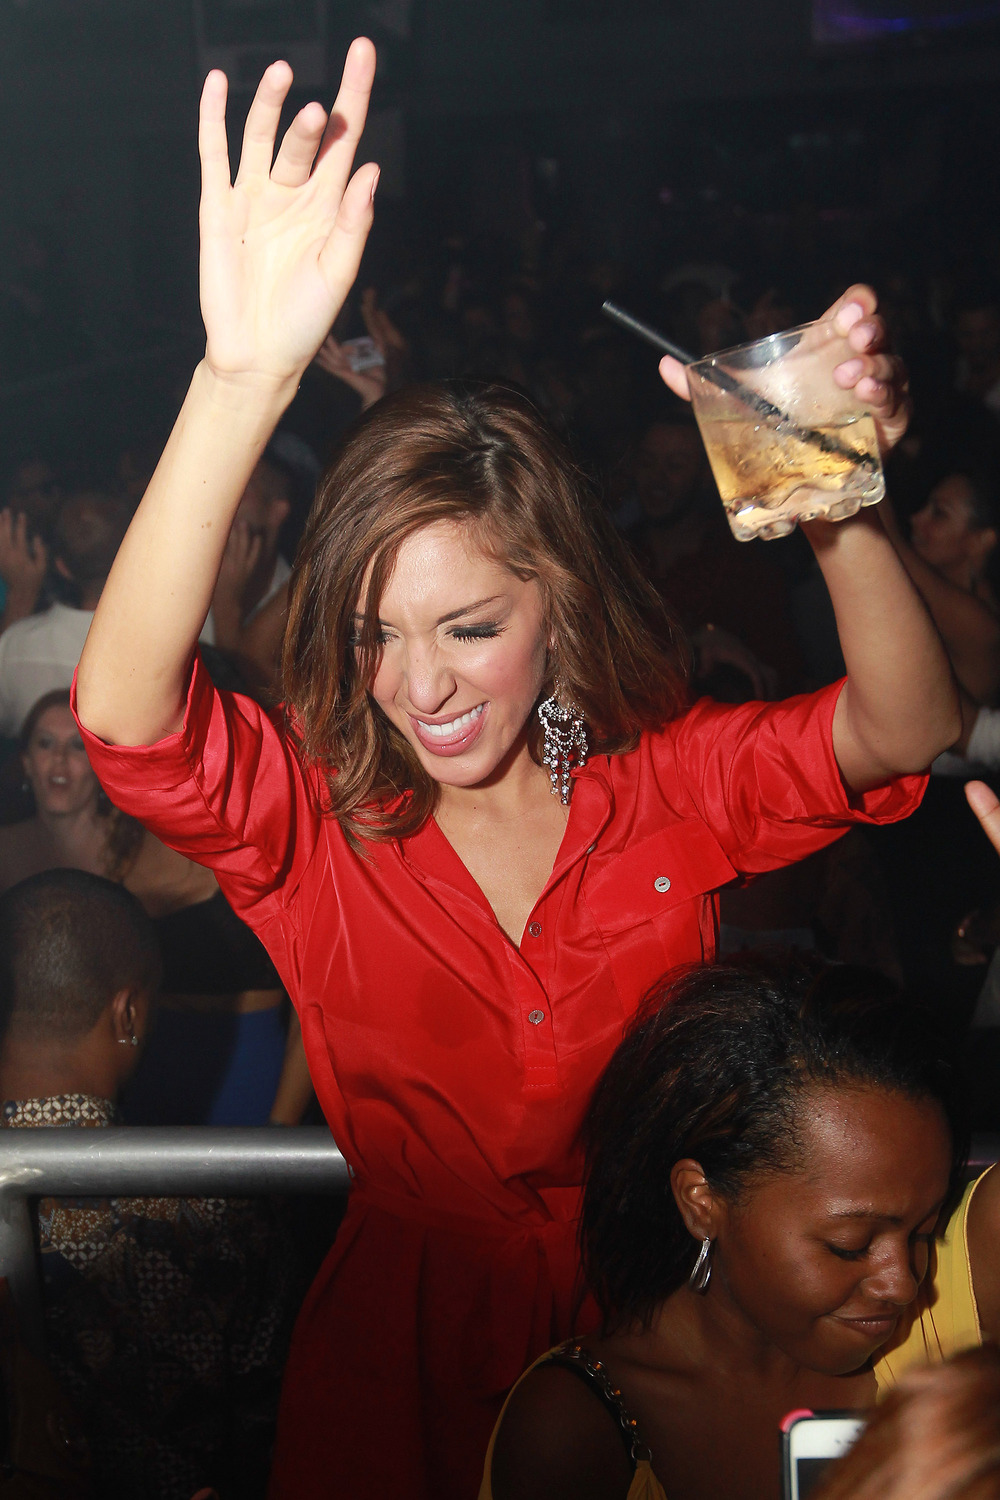 Farrah Abraham's Probation Details  — Will Her License Be Revoked?